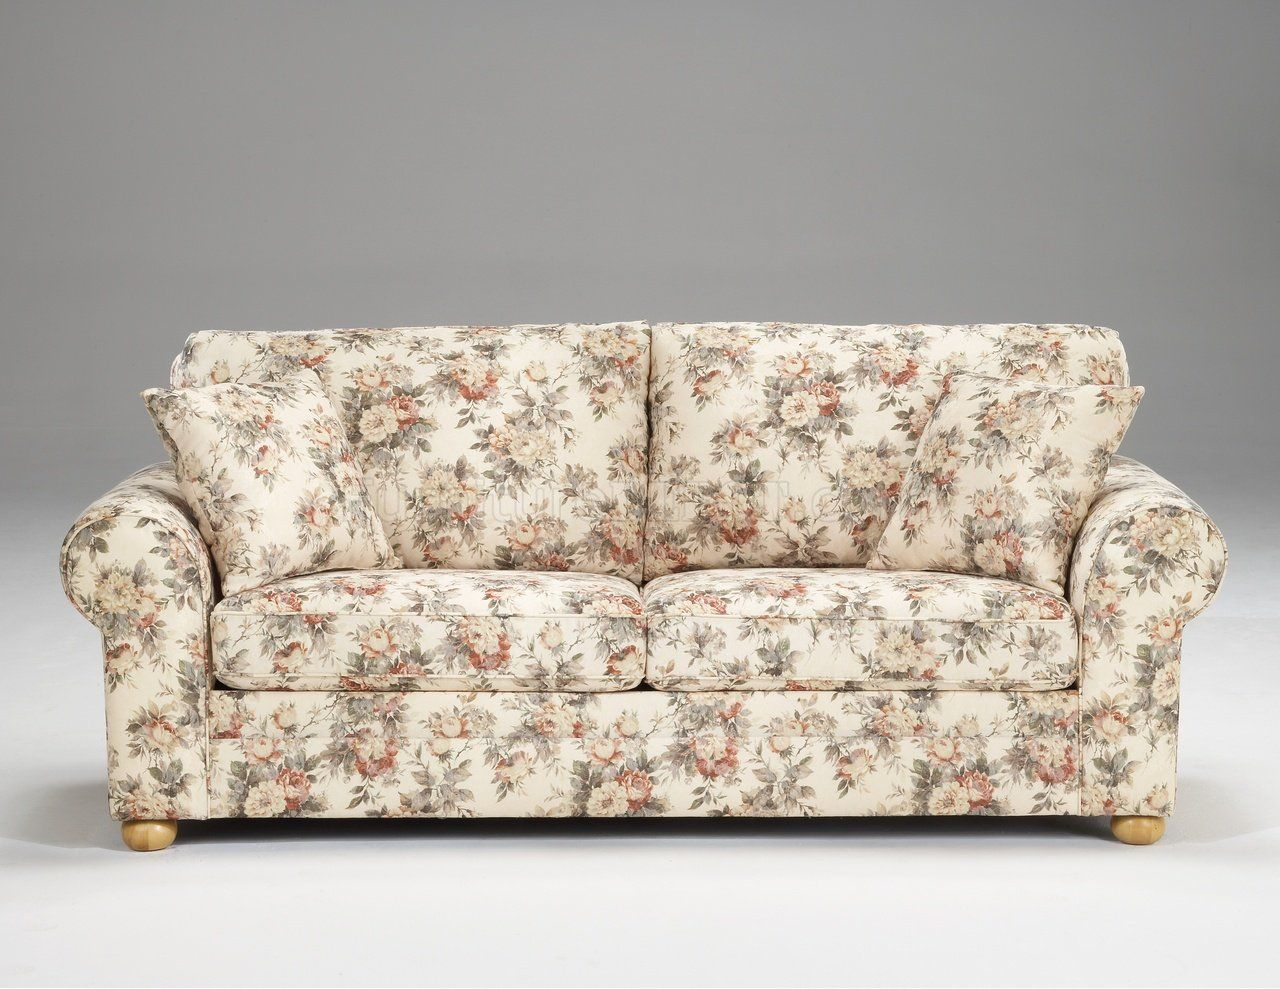 Charmant Cool Floral Sofas , Fantastic Floral Sofas 20 Modern Sofa Ideas With Floral  Sofas , Http